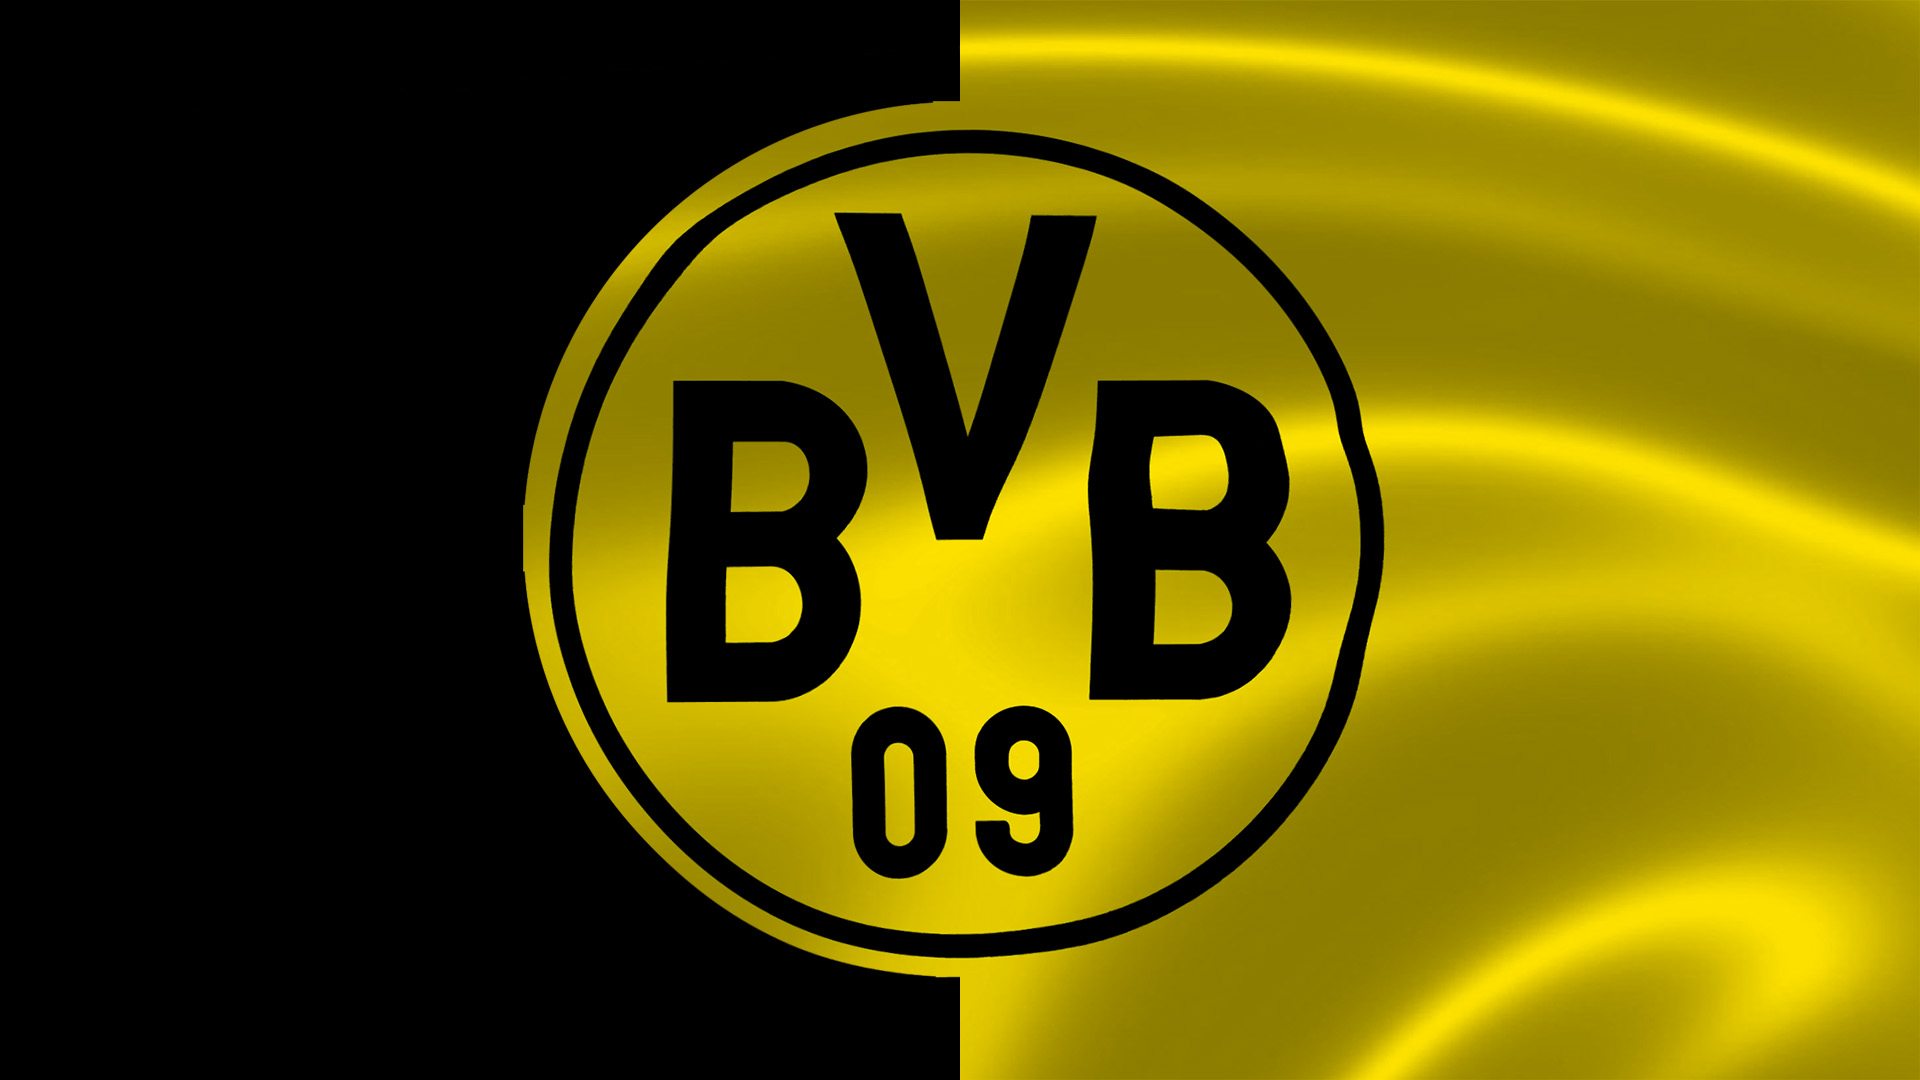 borussia dortmund 003 hintergrundbild whatsapp profilbild. Black Bedroom Furniture Sets. Home Design Ideas